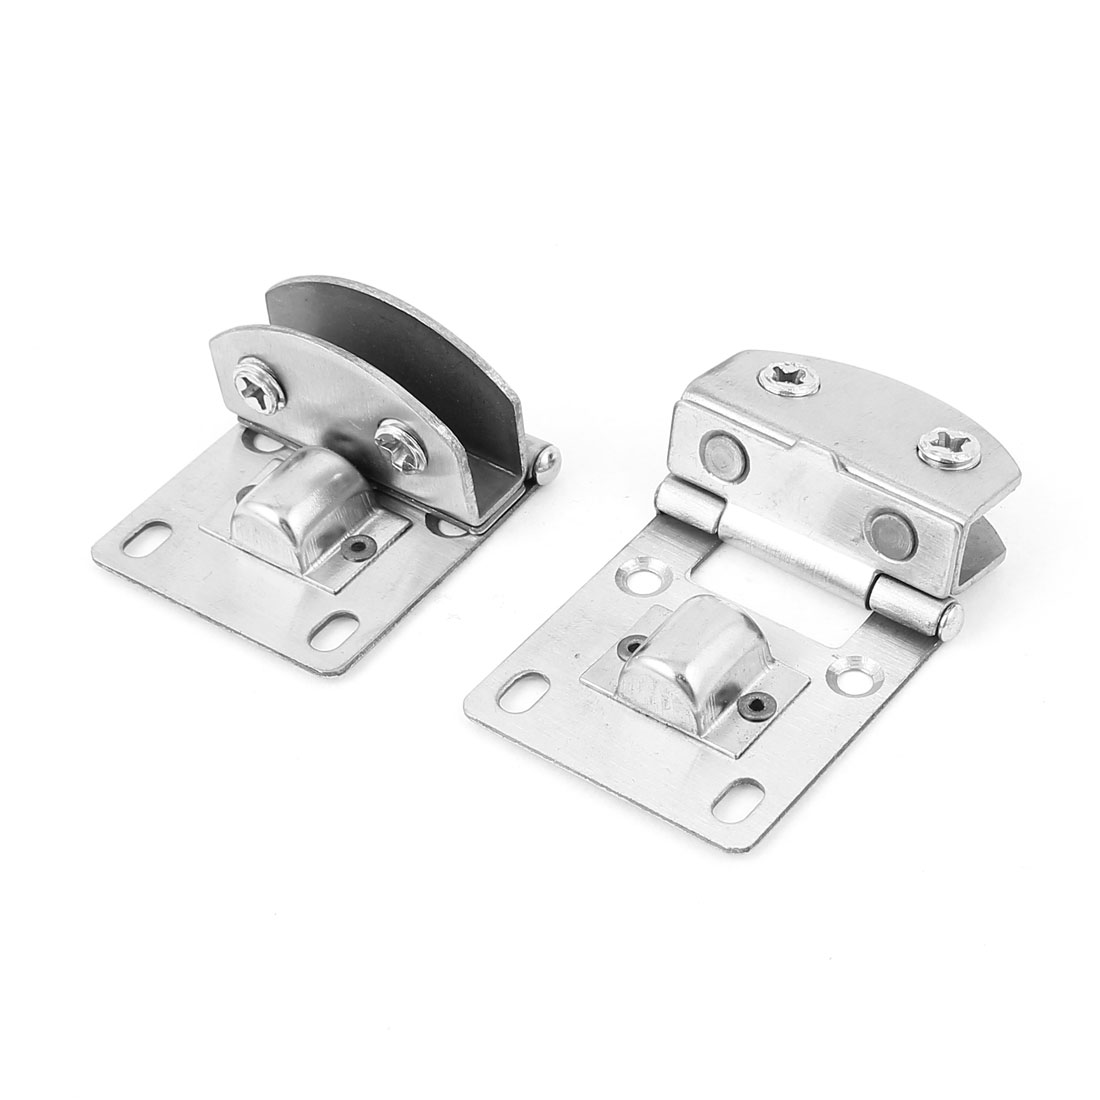 Aquarium Tank Bathroom Metal Hinge Style Glass Clip Support Holder 10mm 2 Pcs